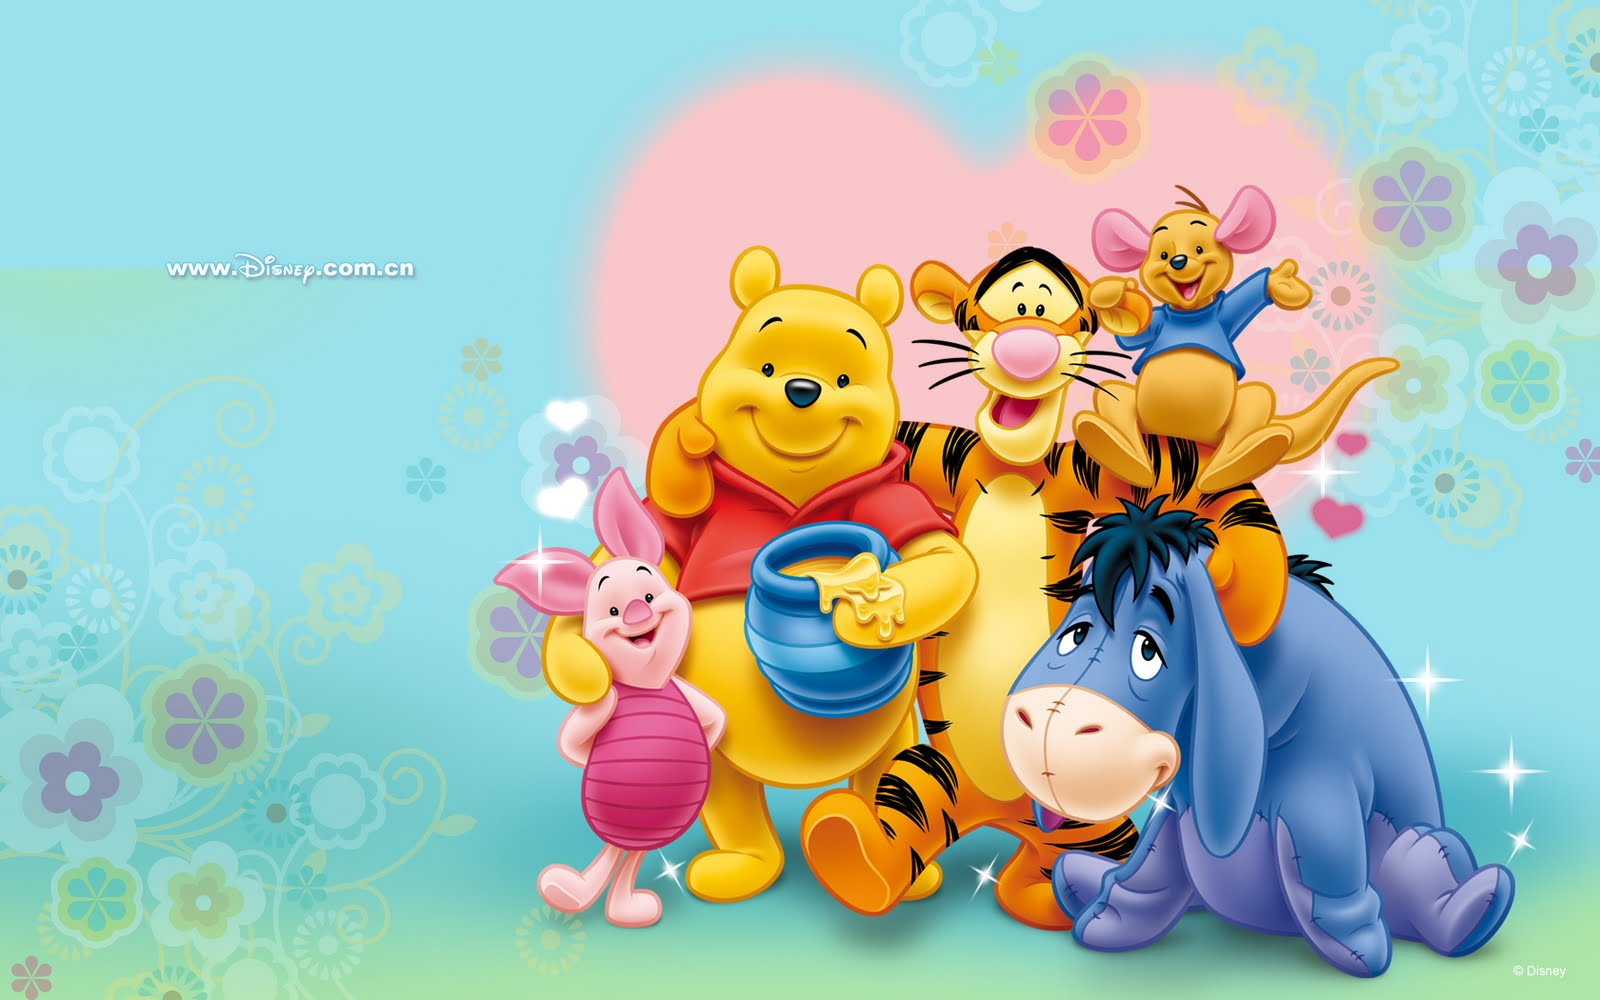 Free Image Bank: 25 Imgenes de Disney Winnie Pooh (Incluye ...